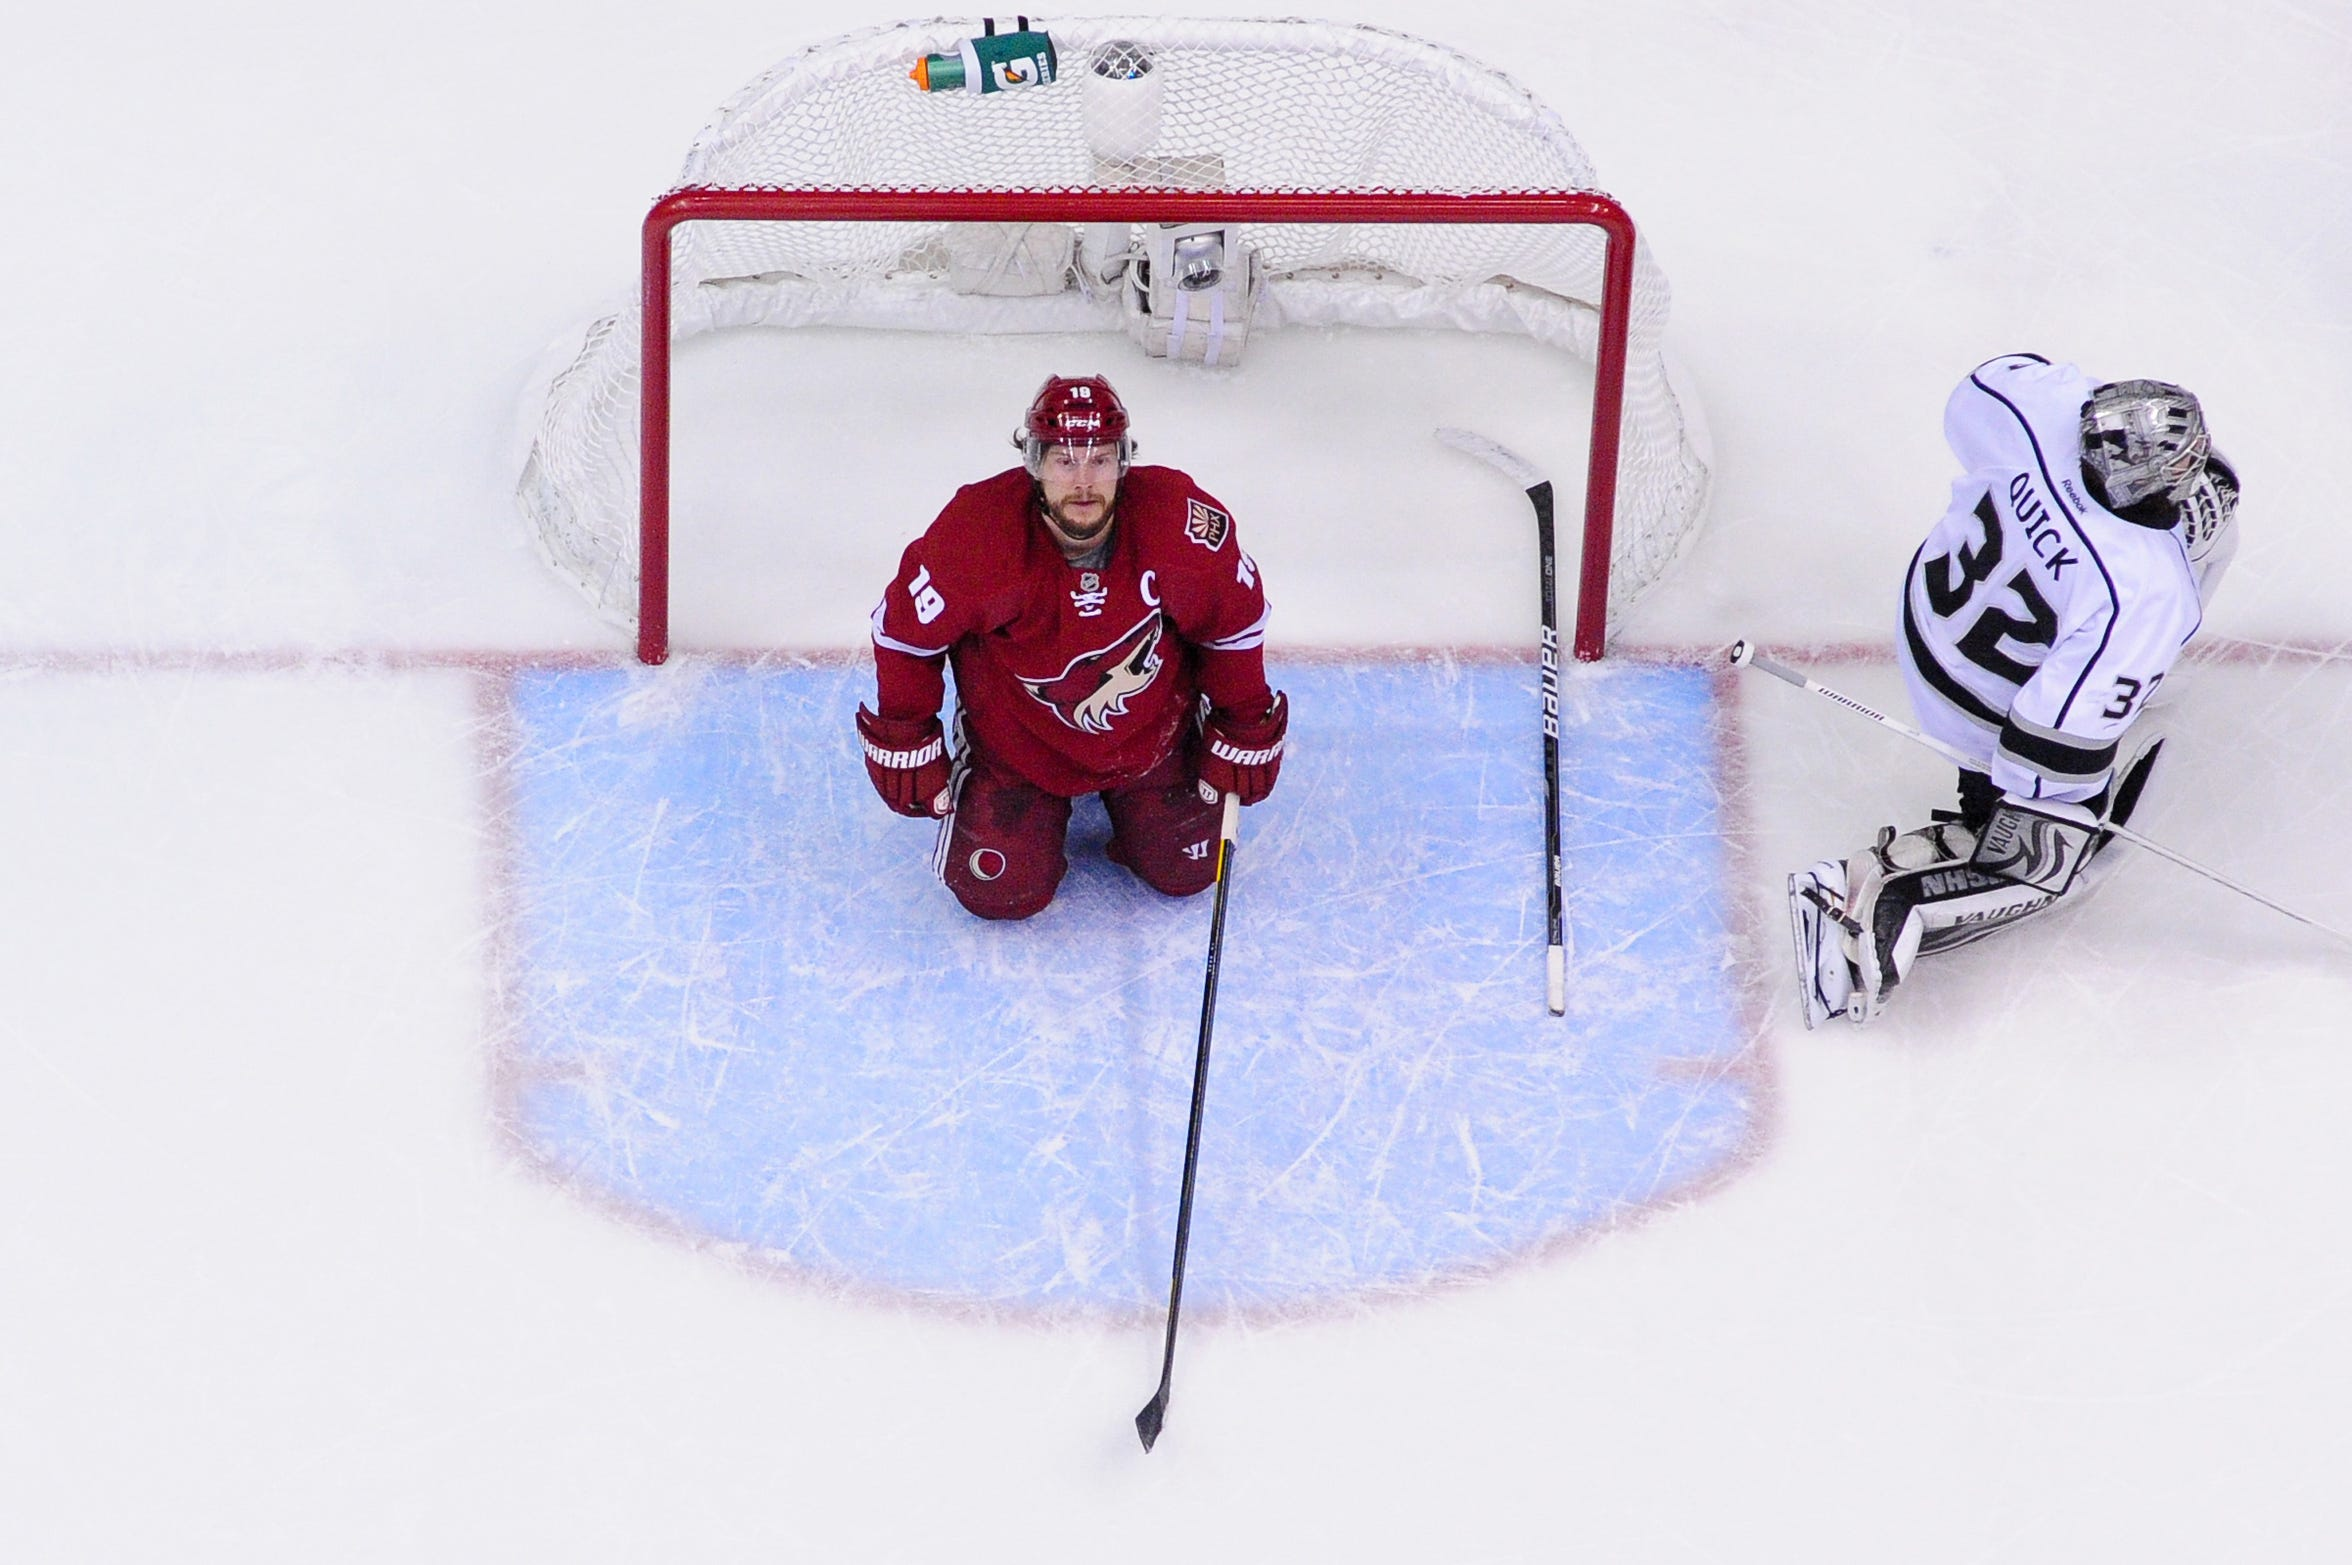 Shane Doan looks on after crashing into Kings goalie Jonathan Quick in the Western Conference finals in 2012.